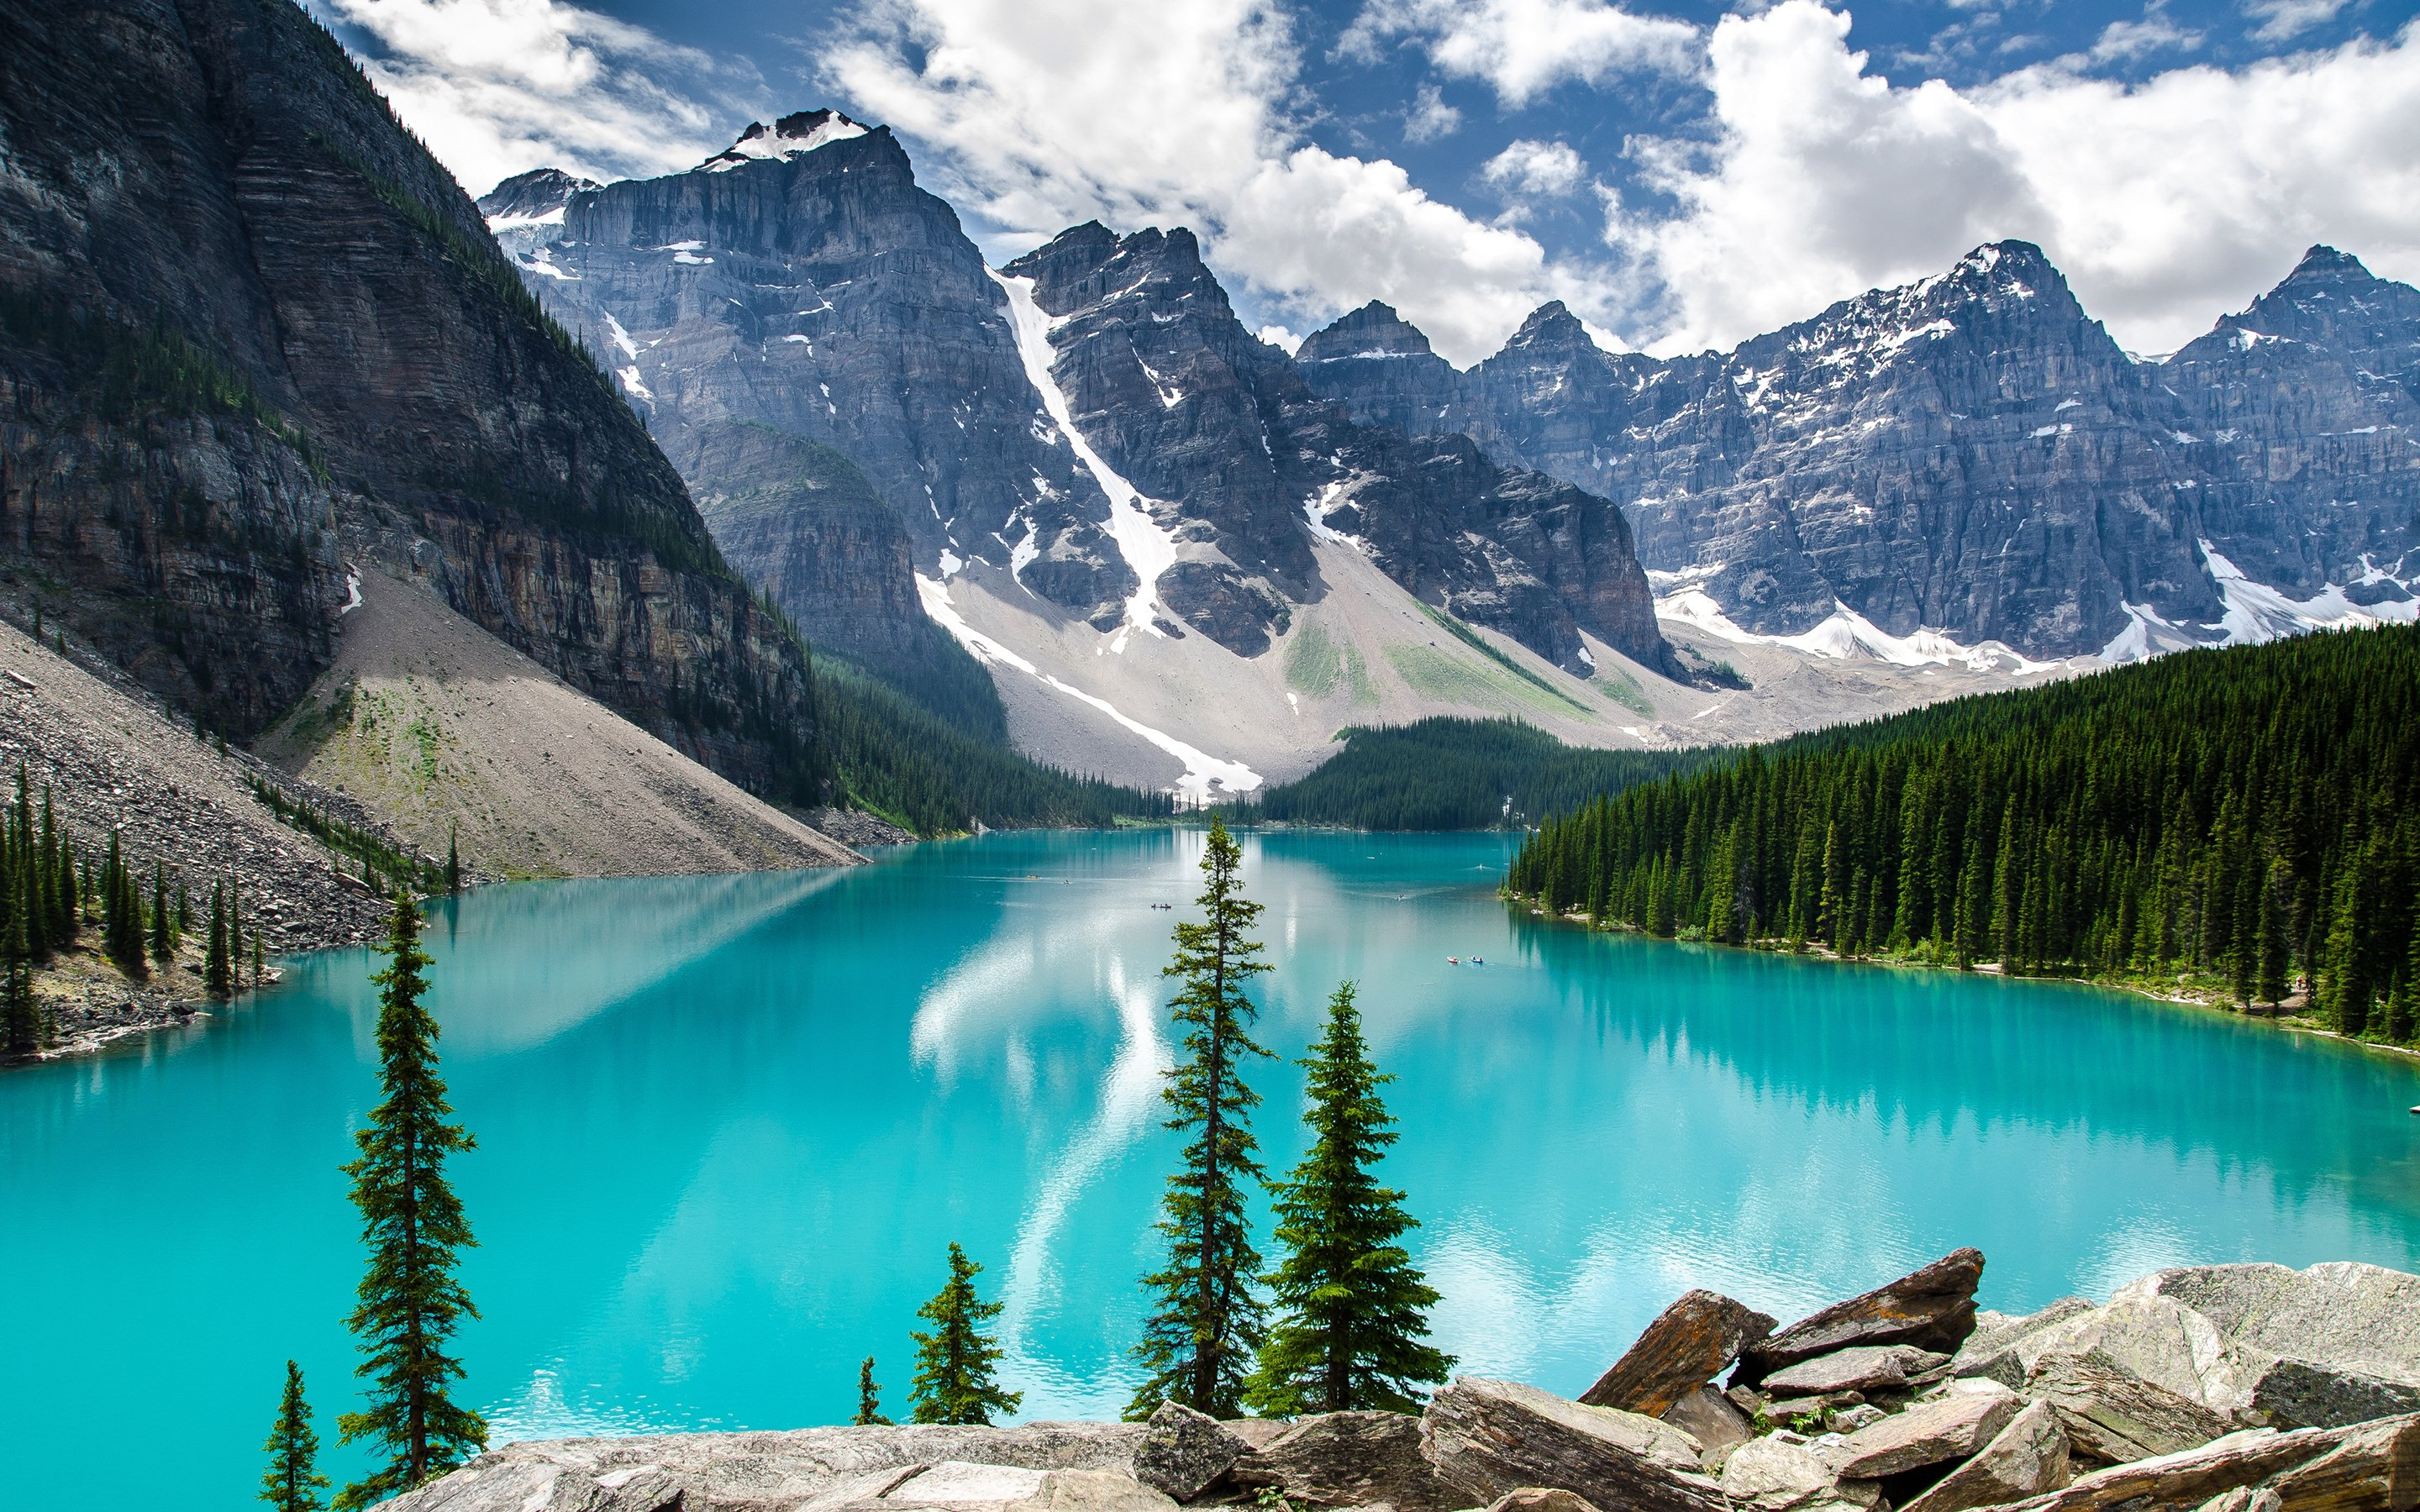 Moraine Lake Banff National Park Wallpapers HD Wallpapers 2880x1800